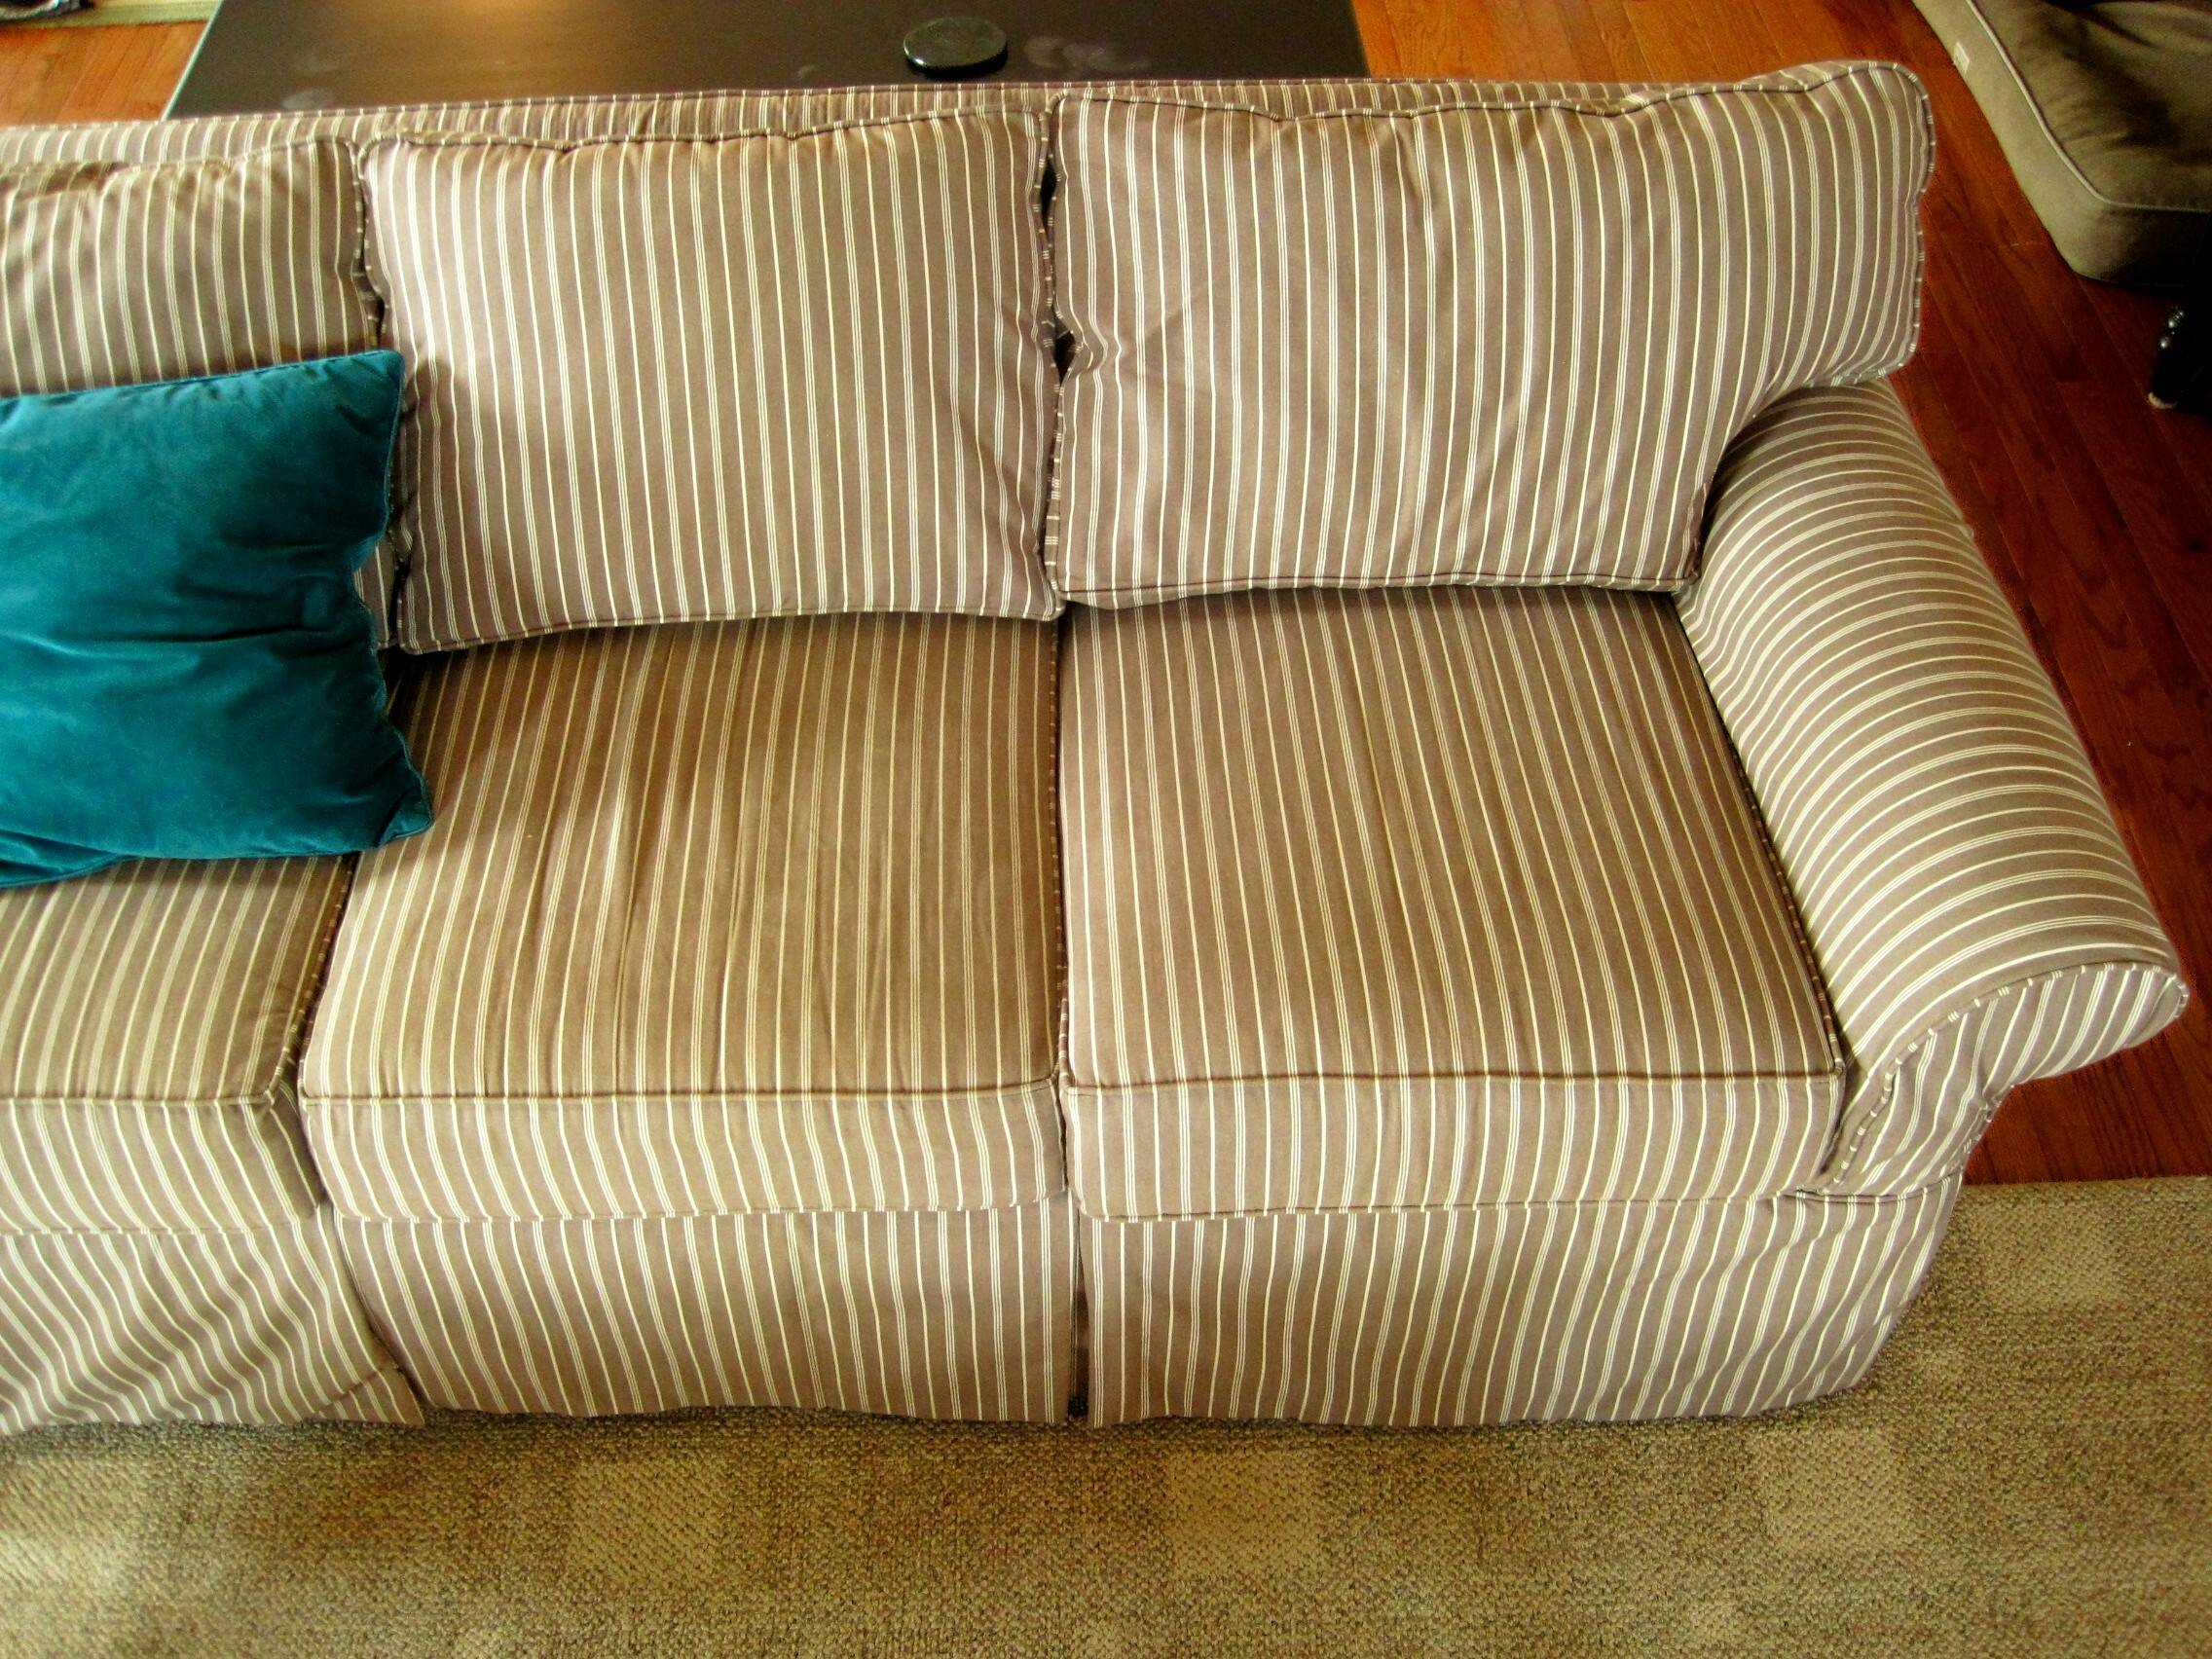 Tips: Smooth And Comfort Slipcovers For Sectional Couches Design inside Striped Sofa Slipcovers (Image 14 of 15)